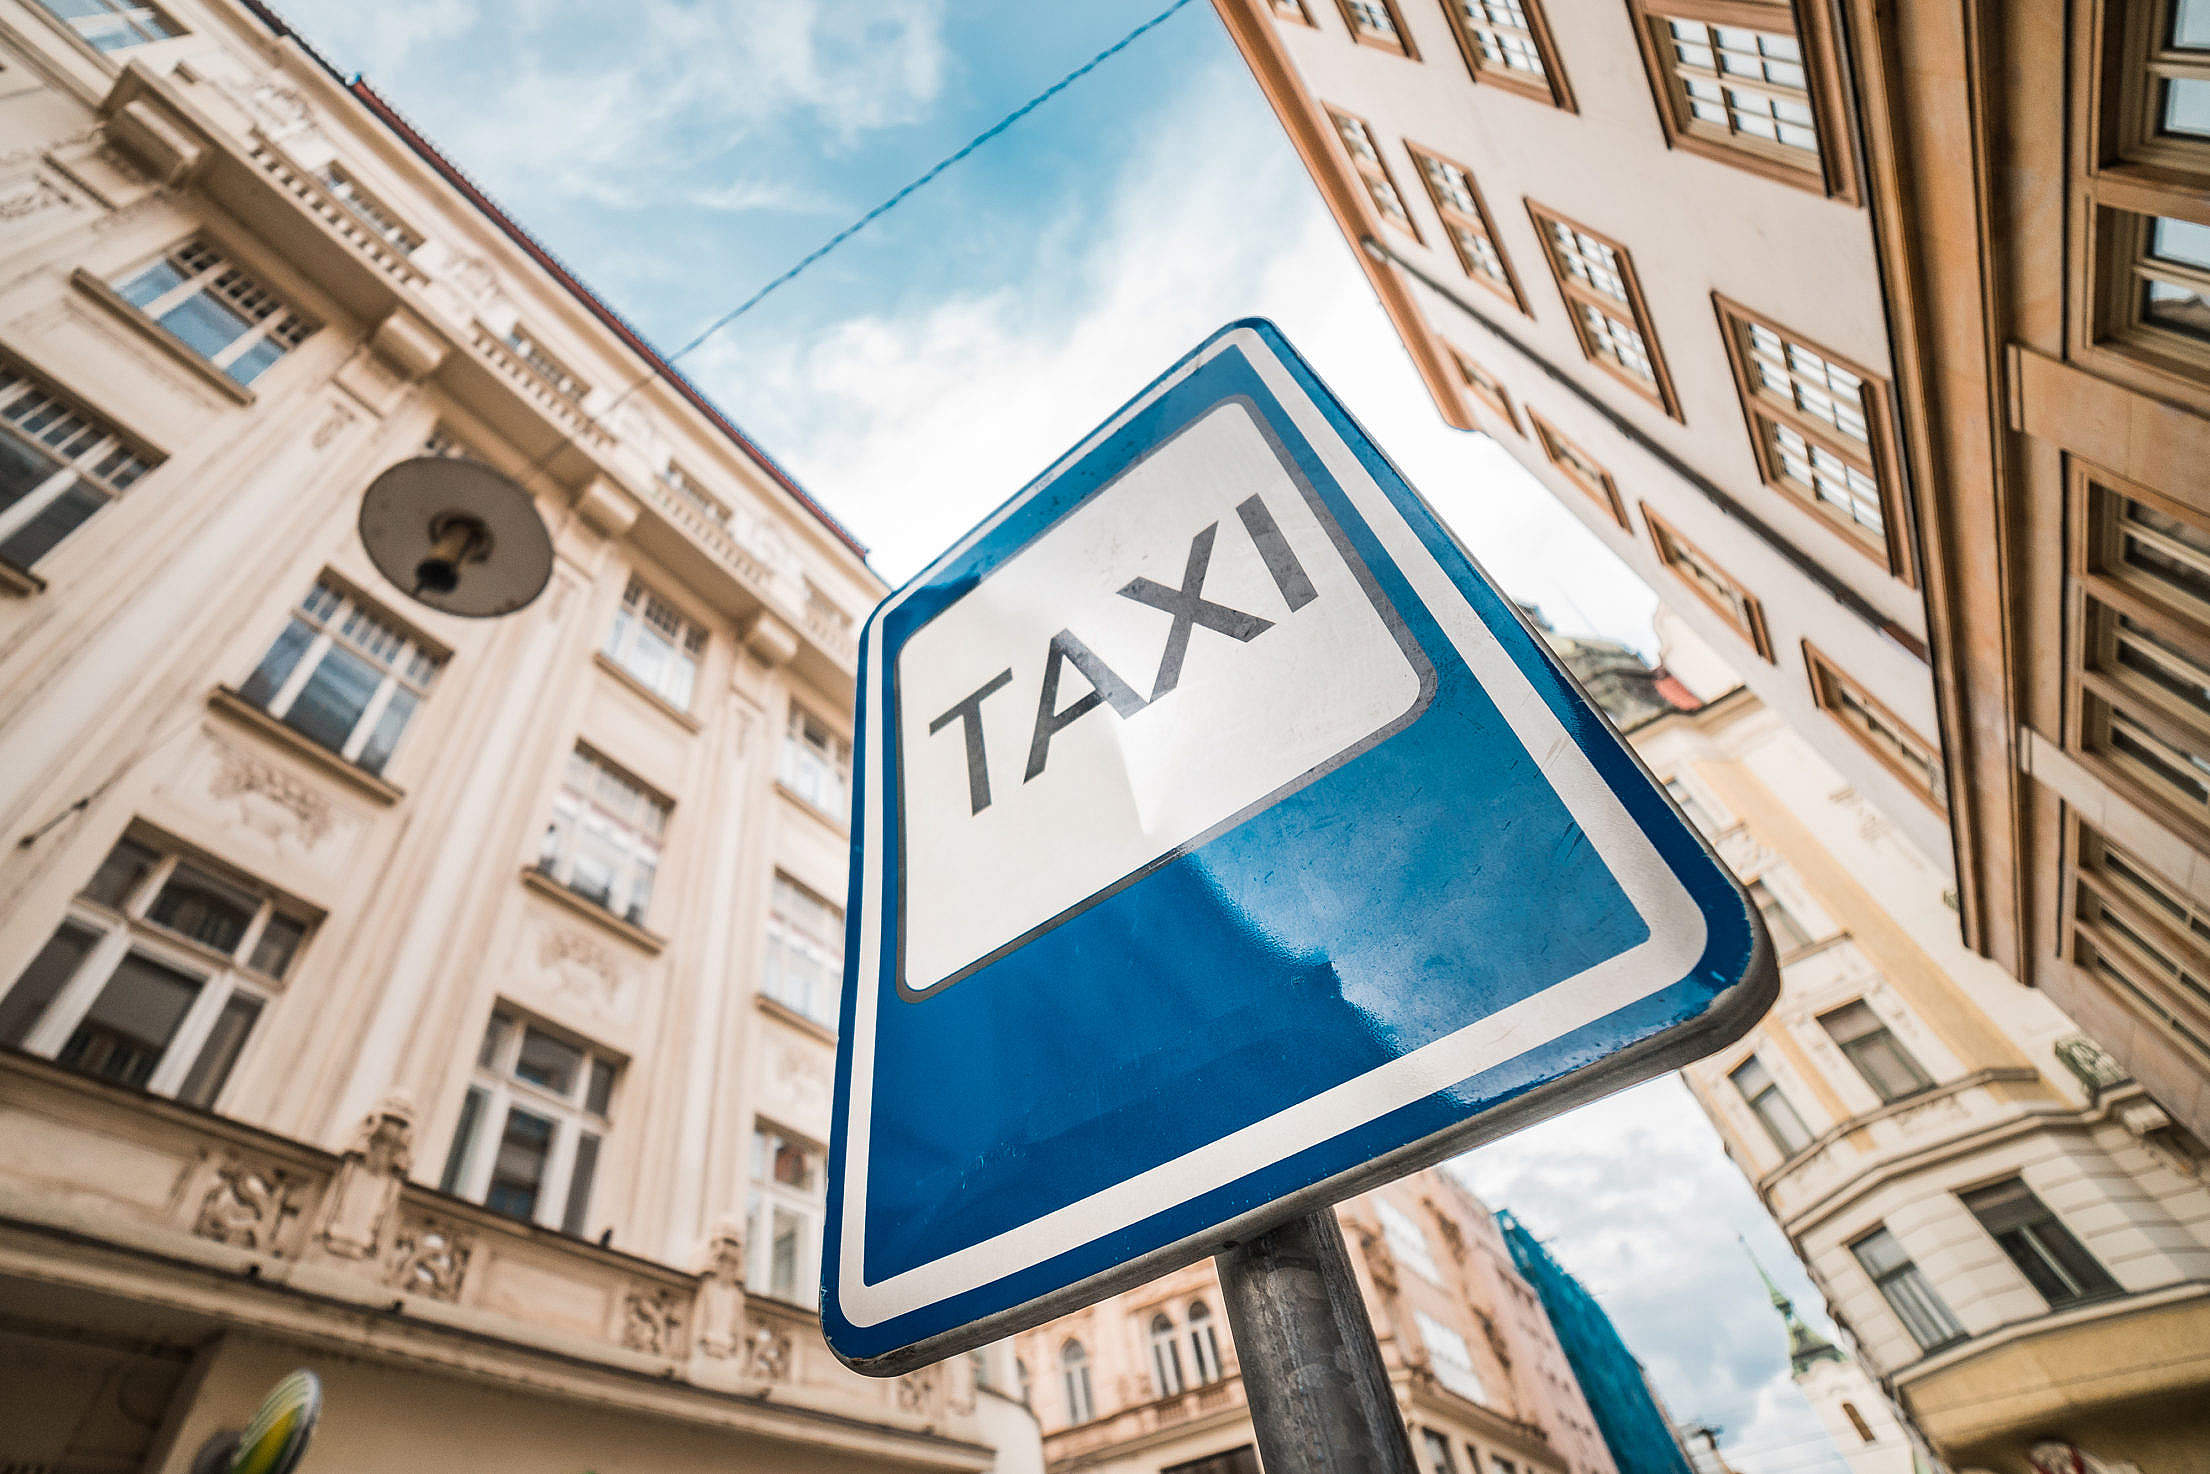 TAXI City Road Sign Free Stock Photo